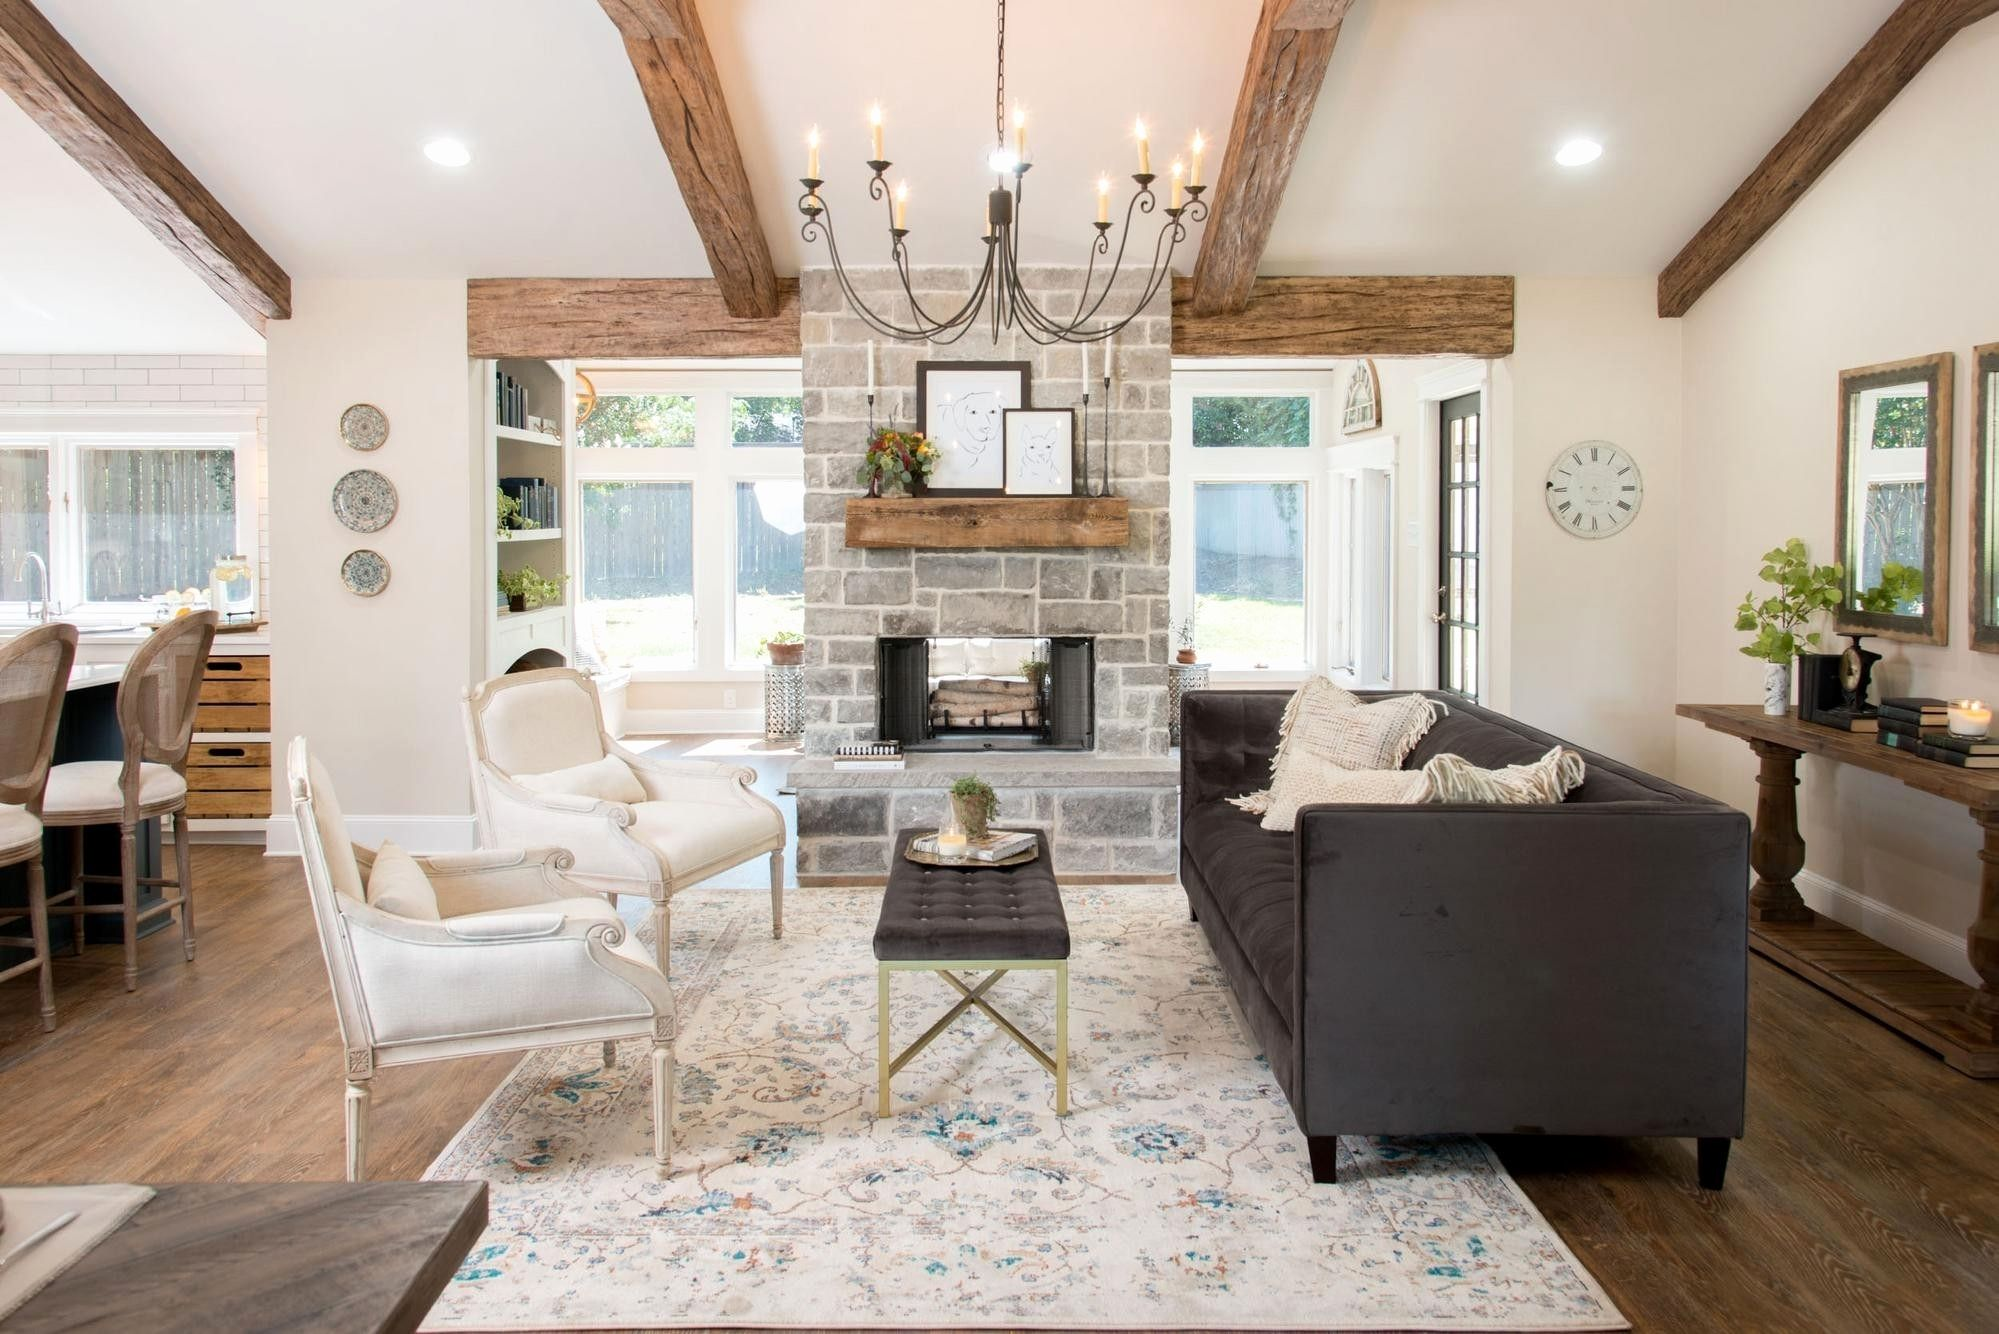 Find Inspiration About Joanna Gaines Living Room Joanna Gaines Living Room Luxury Farm House Living Room Farmhouse Style Living Room Joanna Gaines Living Room